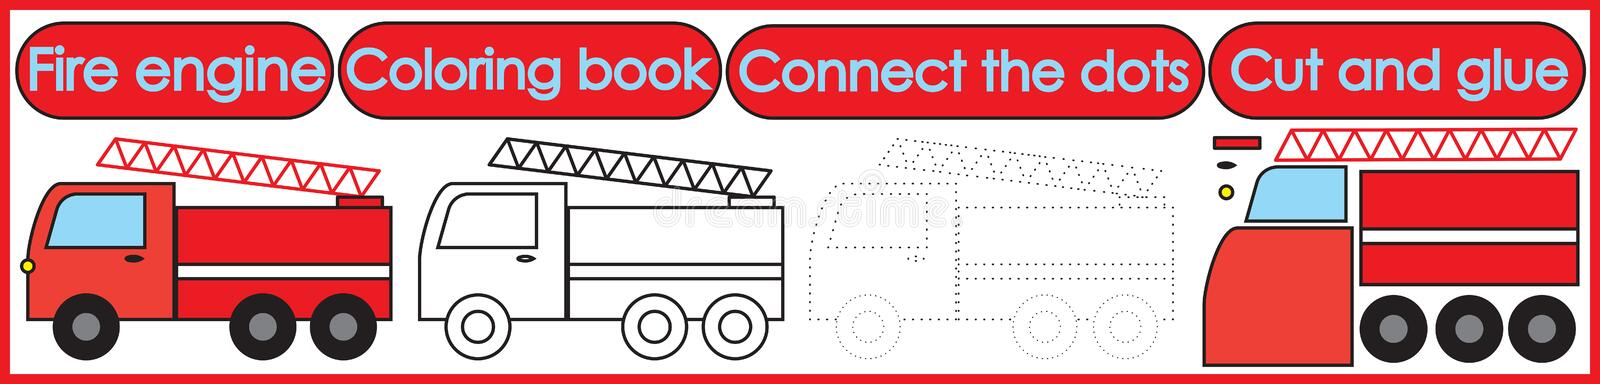 Games for children 3 in 1. Coloring book, connect the dots, cut. And glue. Fire engine cartoon. Vector illustration vector illustration